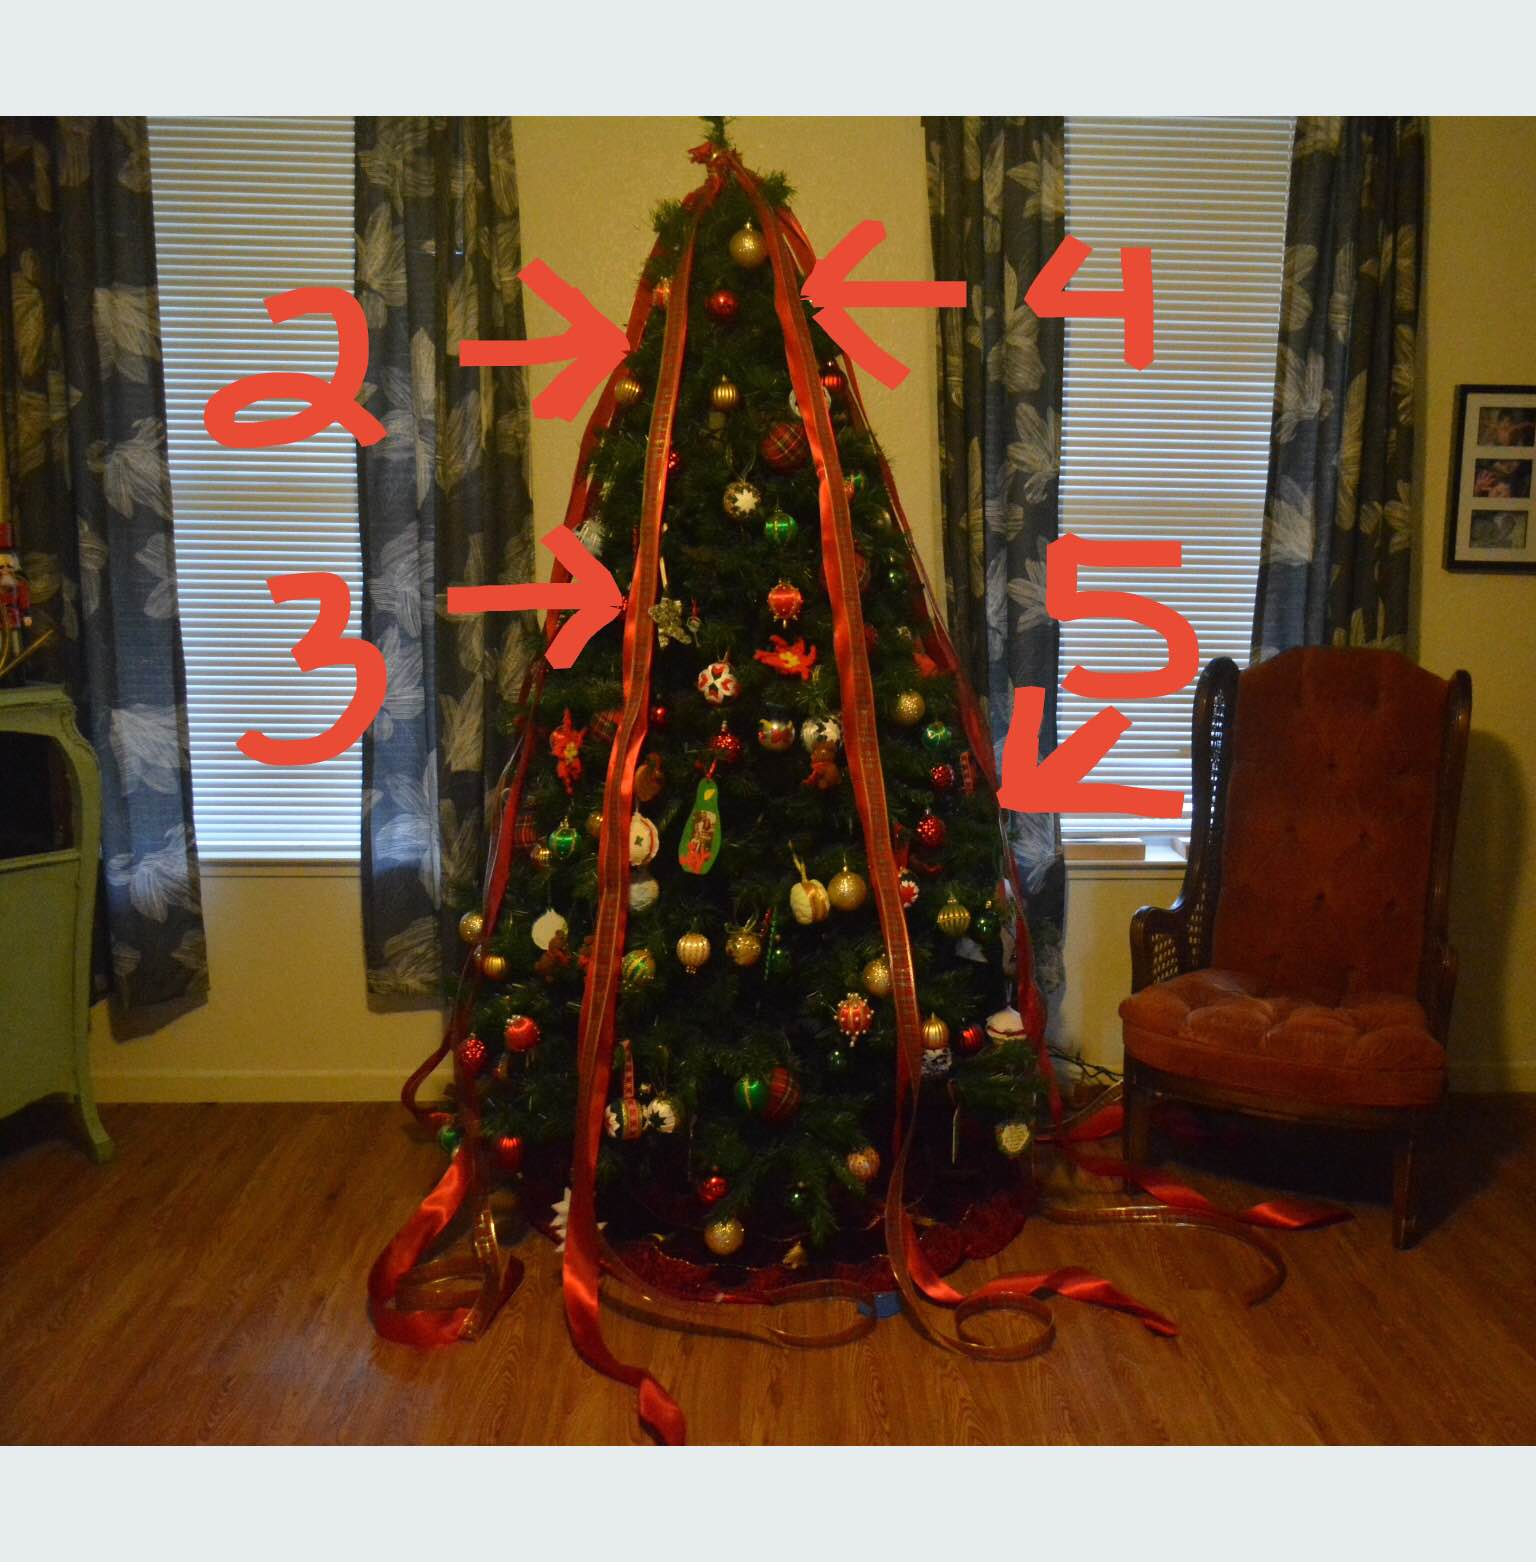 for the first criss cross use the wire to bind together ribbons 1 2 3 4 and 5 6 about 1 12 feet down from the top of the tree - Criss Cross Ribbon Christmas Tree